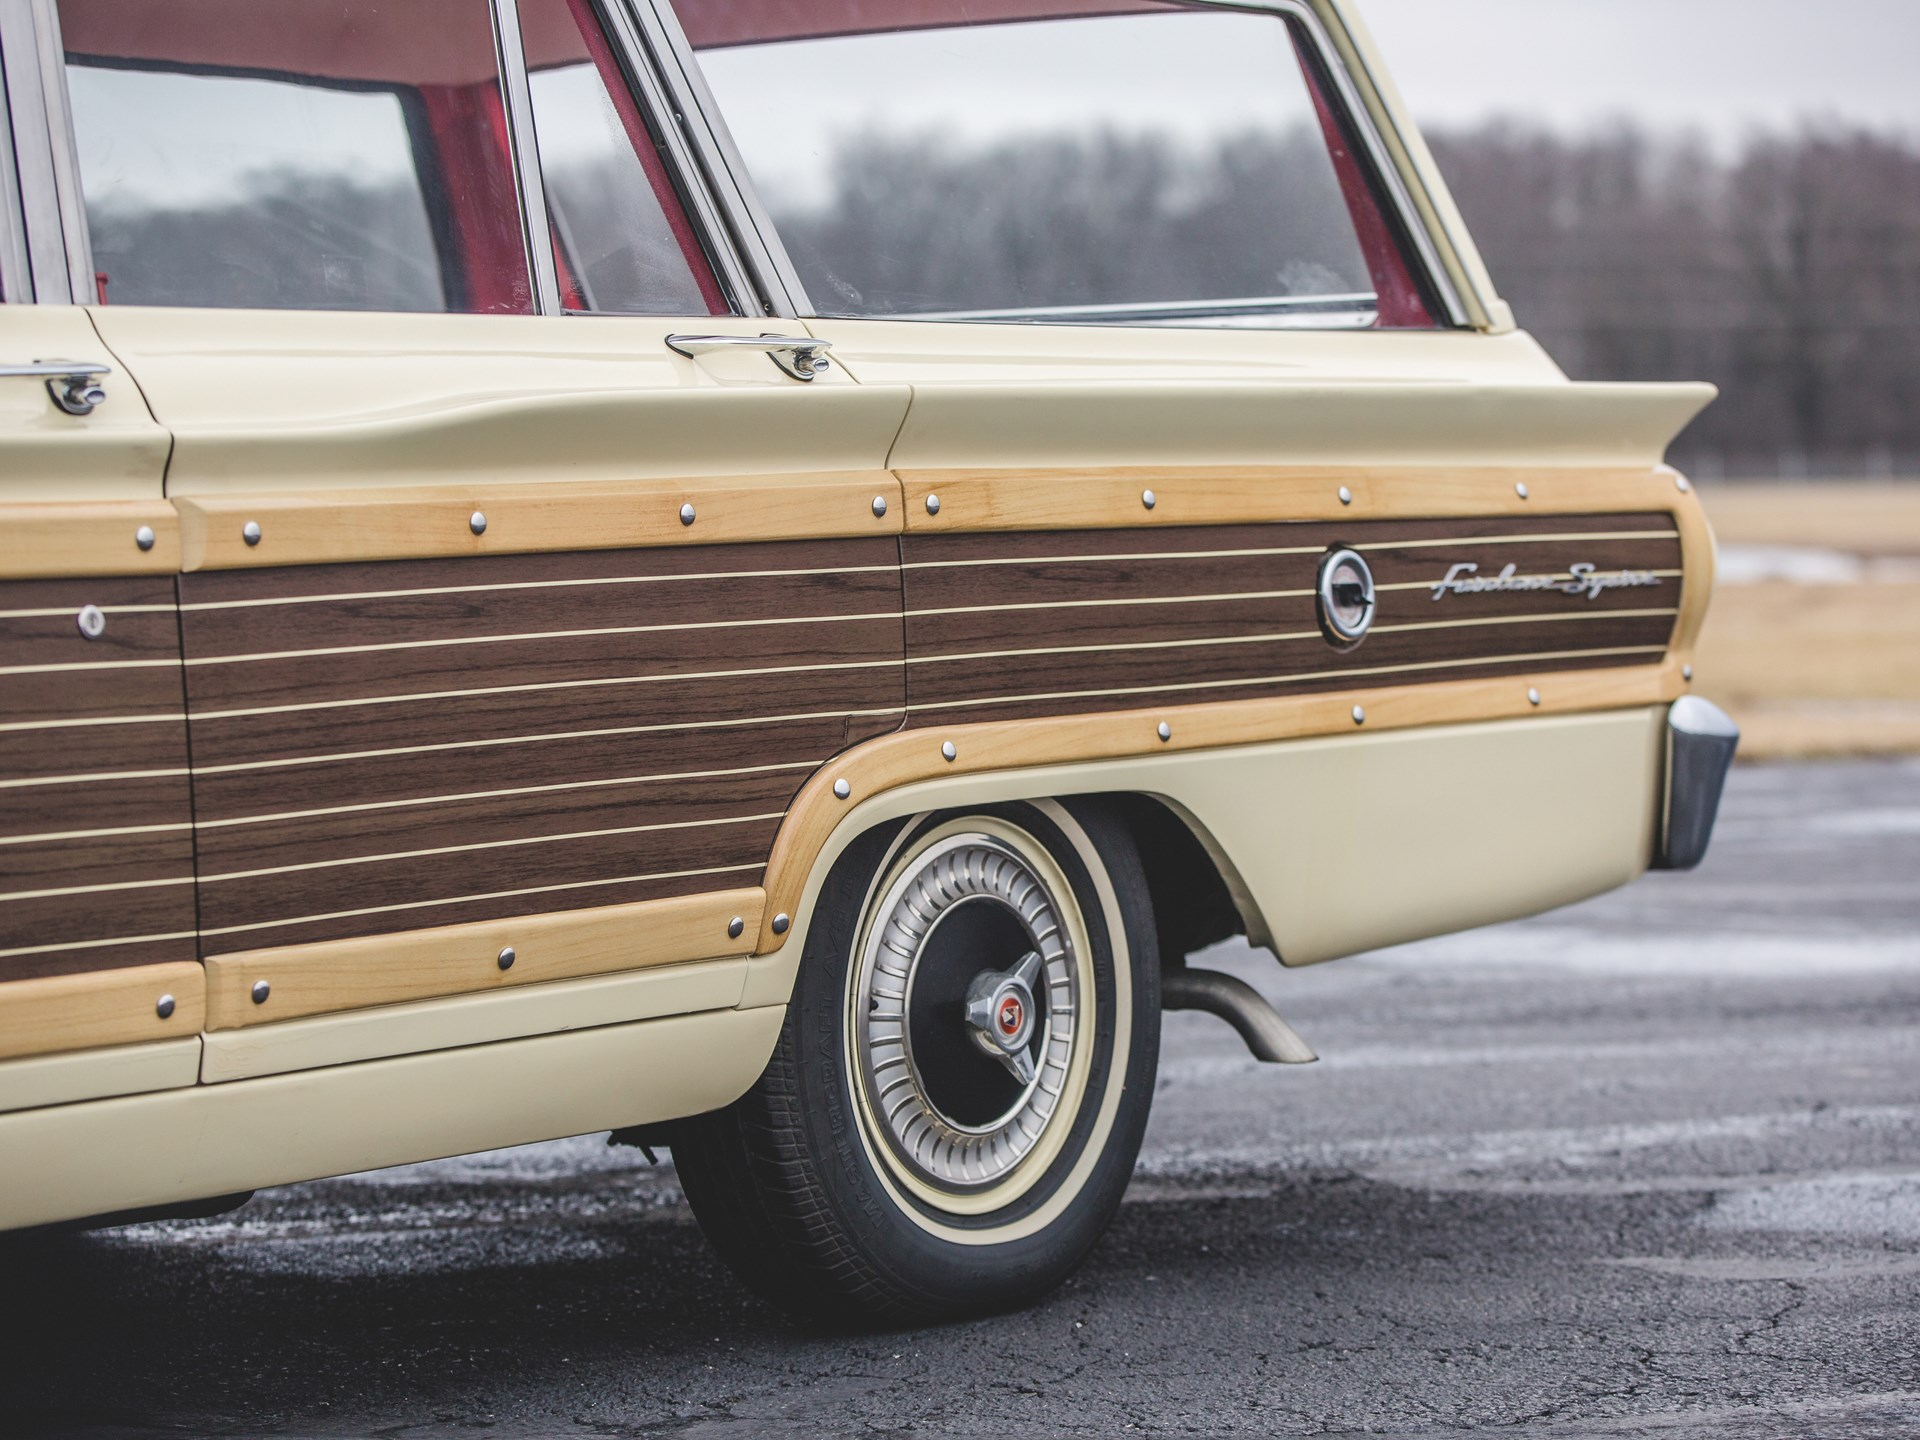 RM Sotheby's - 1963 Ford Fairlane 500 Squire   Auburn Spring